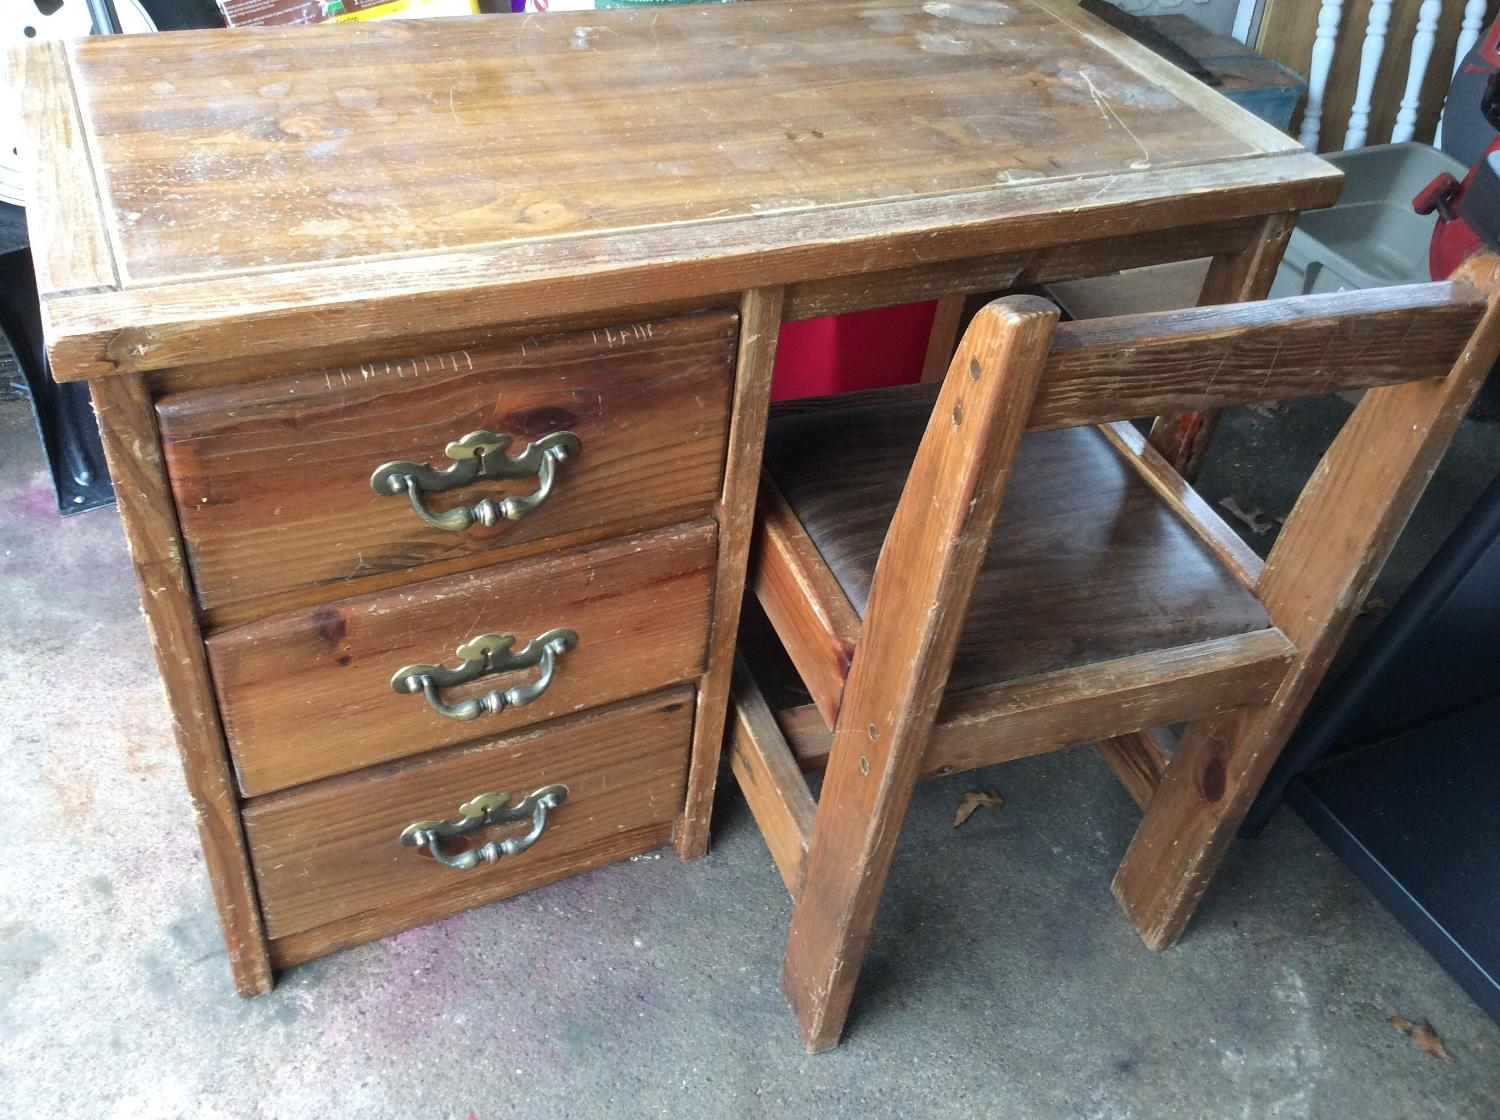 Find More Heavy Well Made Student Desk And Chair Needs Refurbishing For Sale At Up To 90 Off